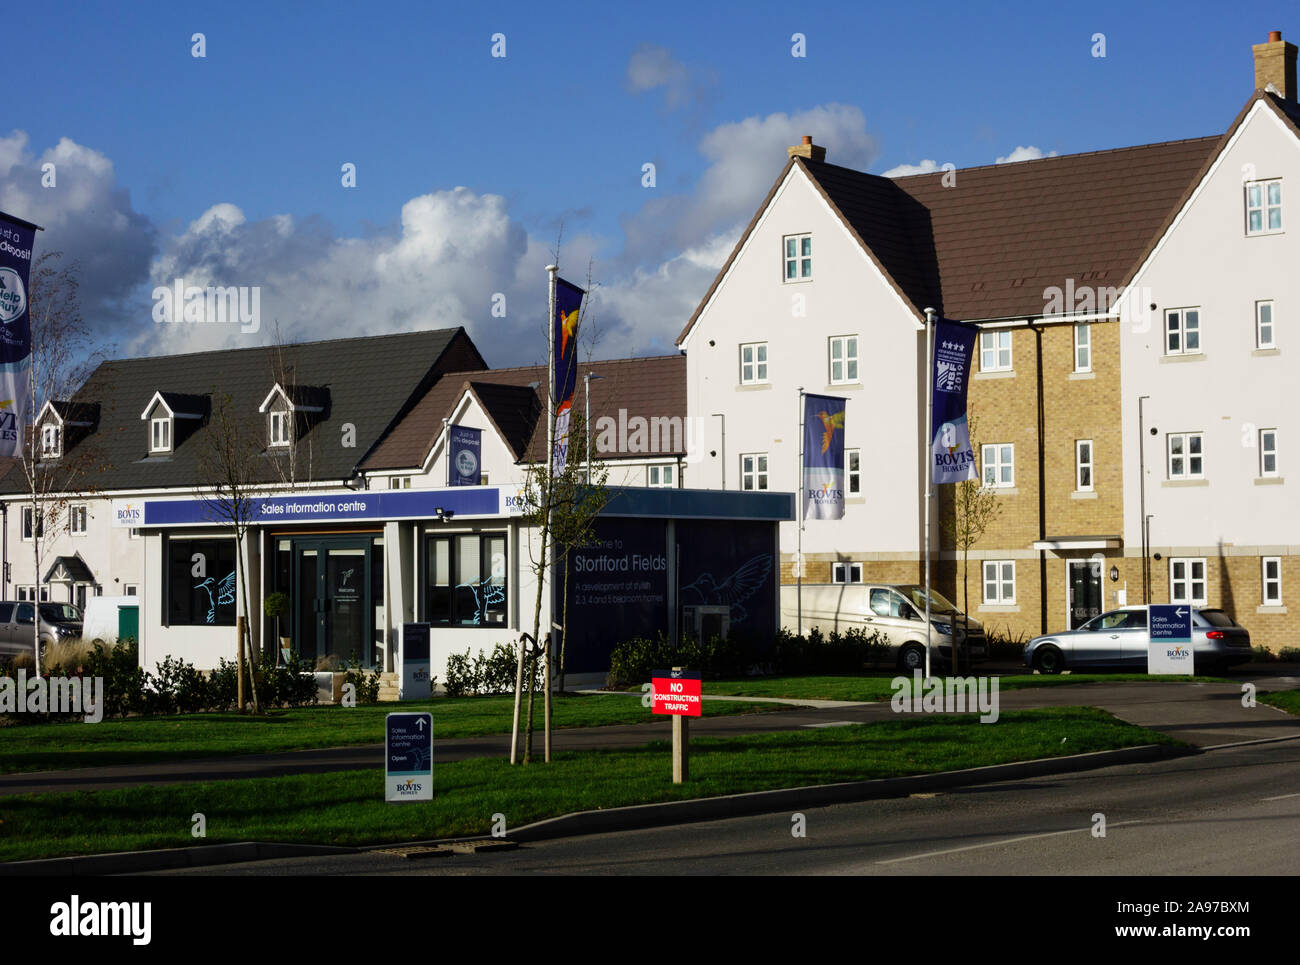 857 homes available at stortfordfields, housing development employment land, shops, community facilities in Bishops Stortford, Hertfordshire, England Stock Photo